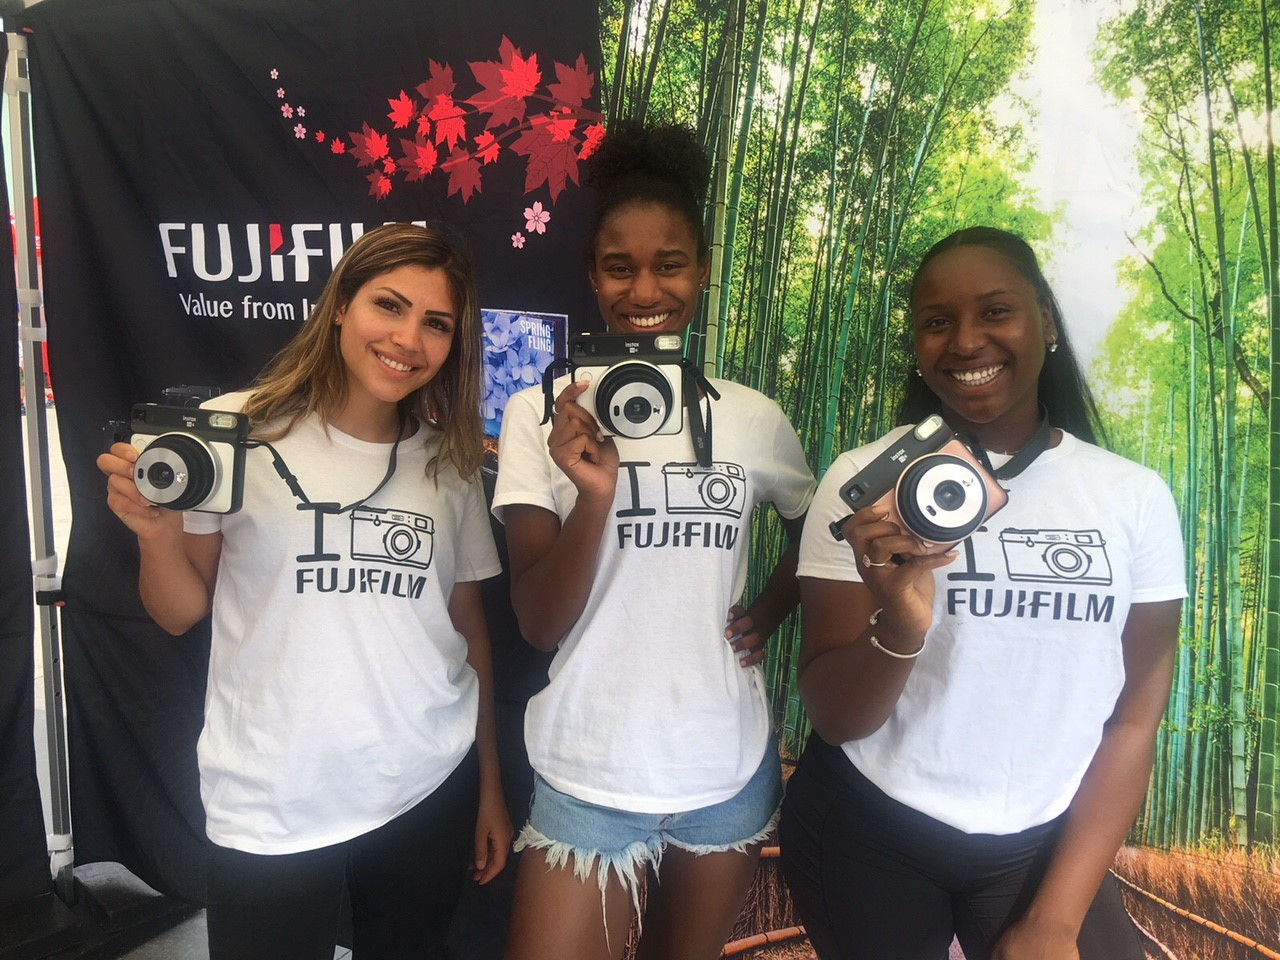 fujifilm trade show experiential marketing canada